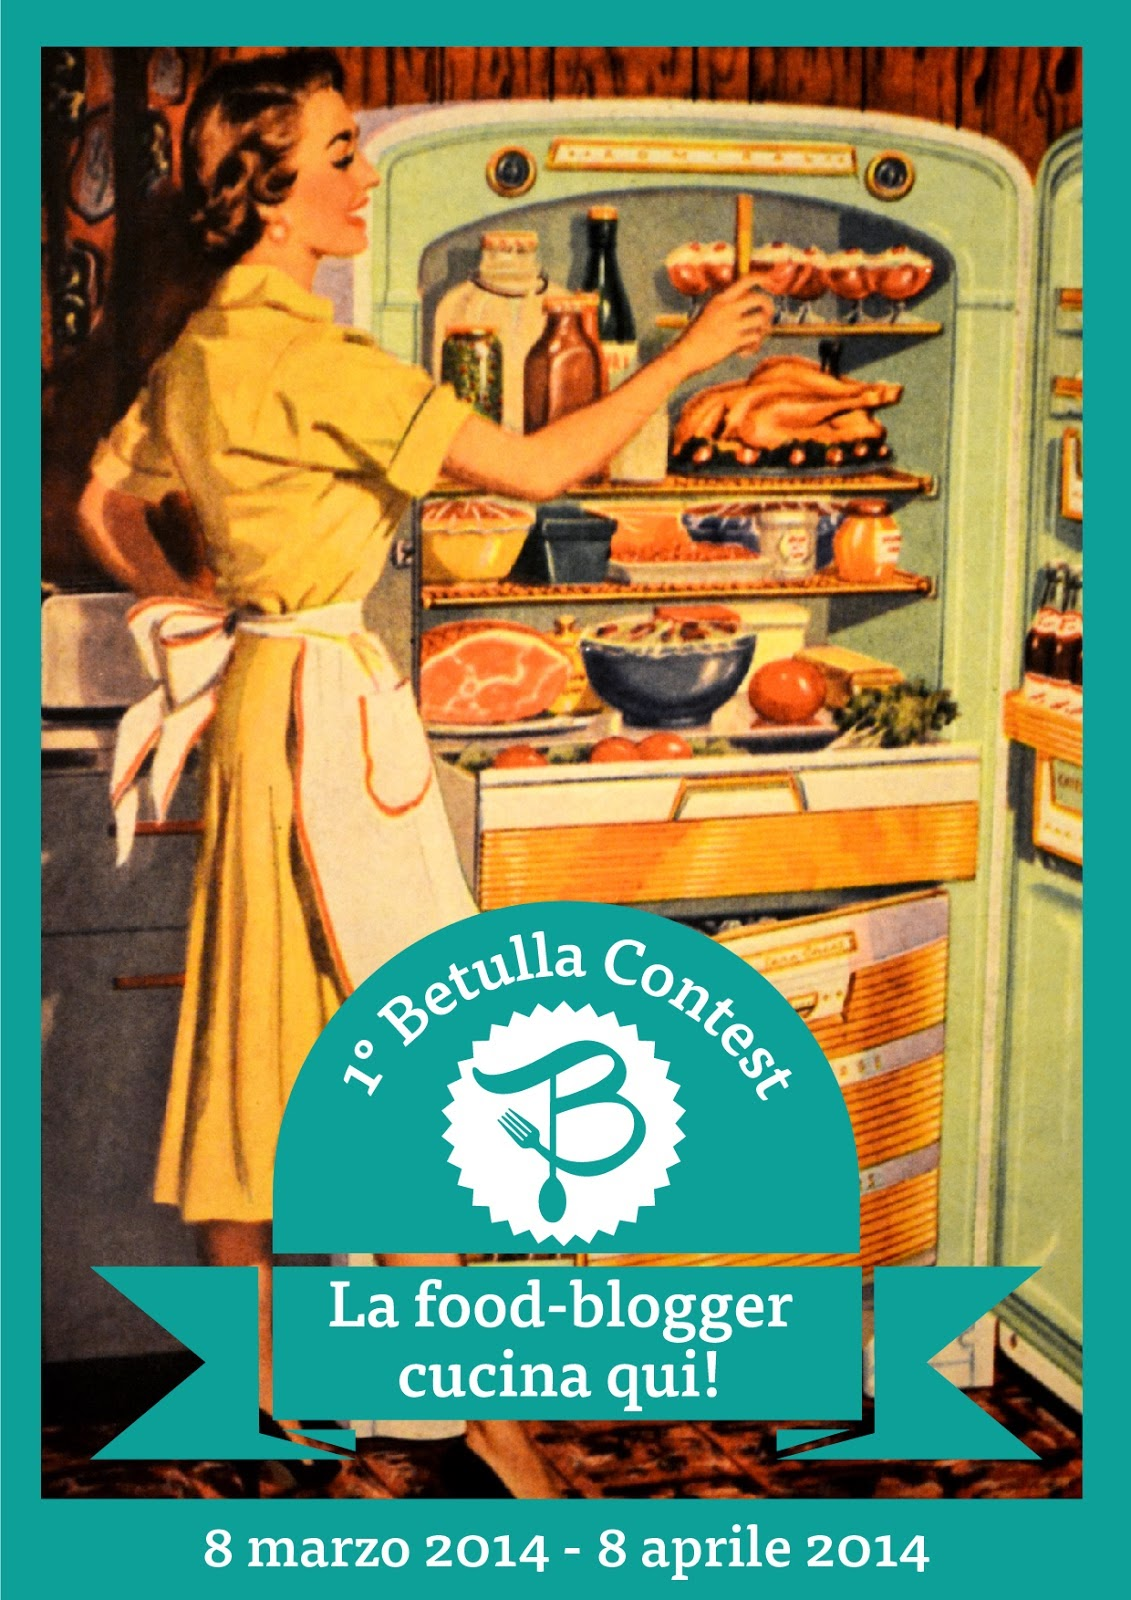 la food-blogger cucina qui